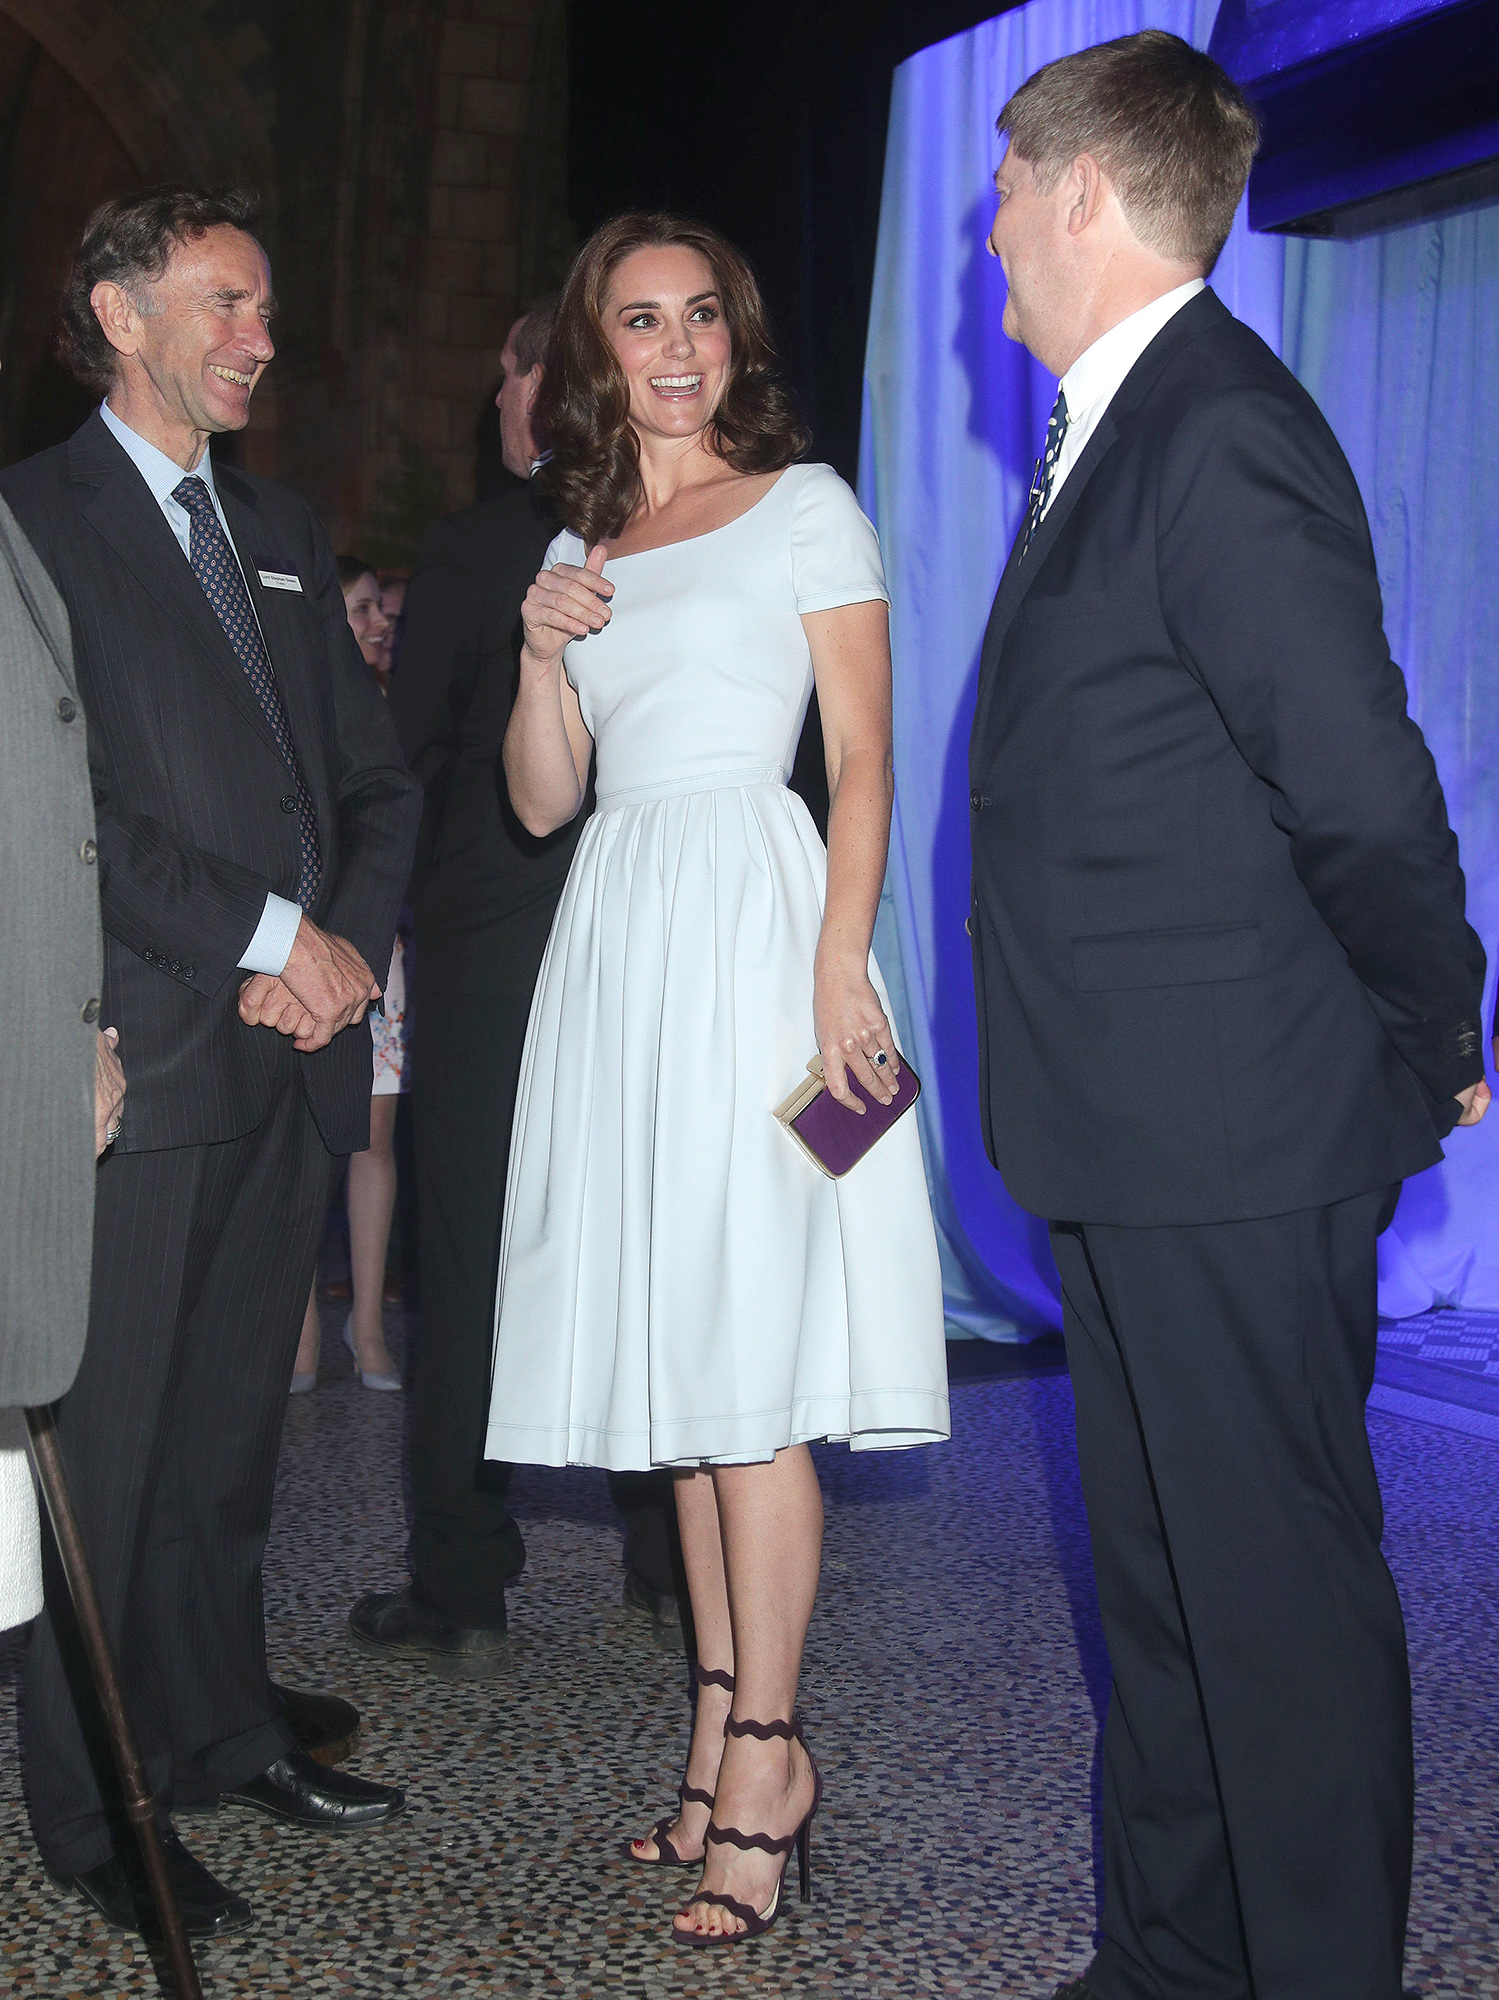 Catherine, Duchess of Cambridge at the Reopening of Hintze Hall at the Natural History Museum in London